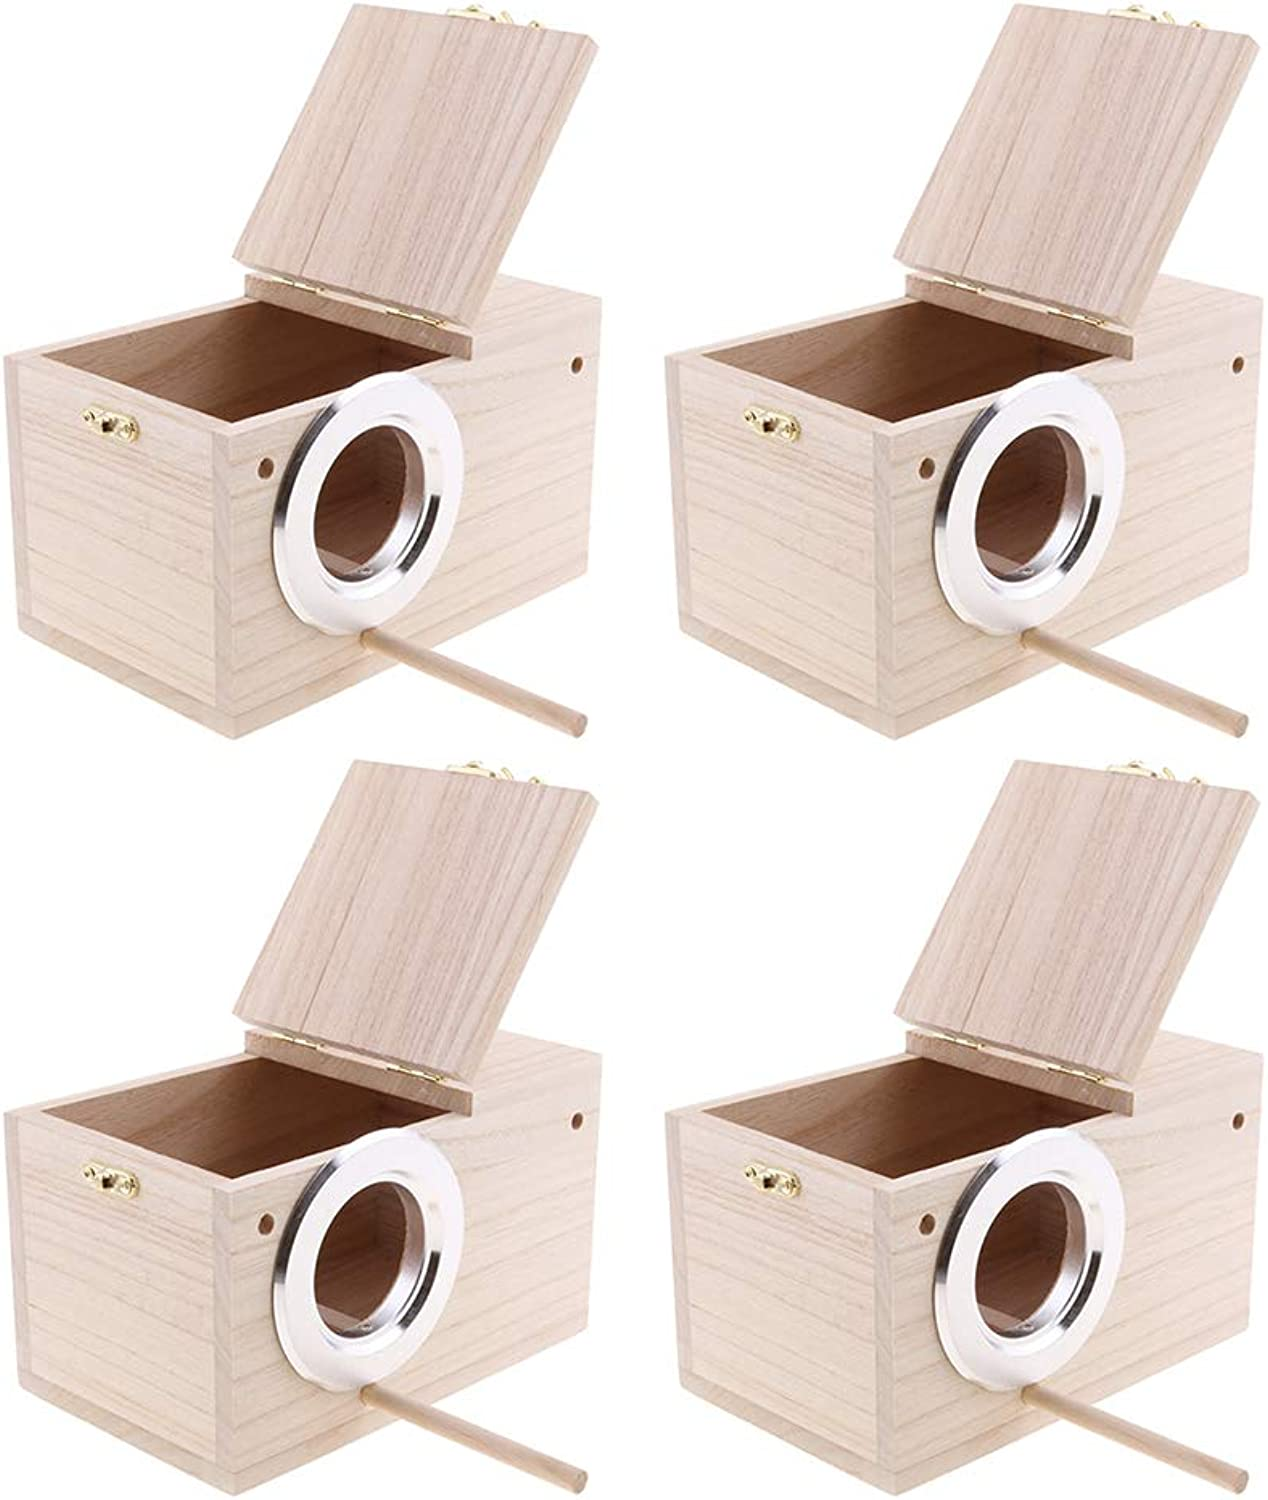 Fenteer 4Pcs Wooden Budgie Nest Nesting Box & Perch for Cage Aviary with Opening Top